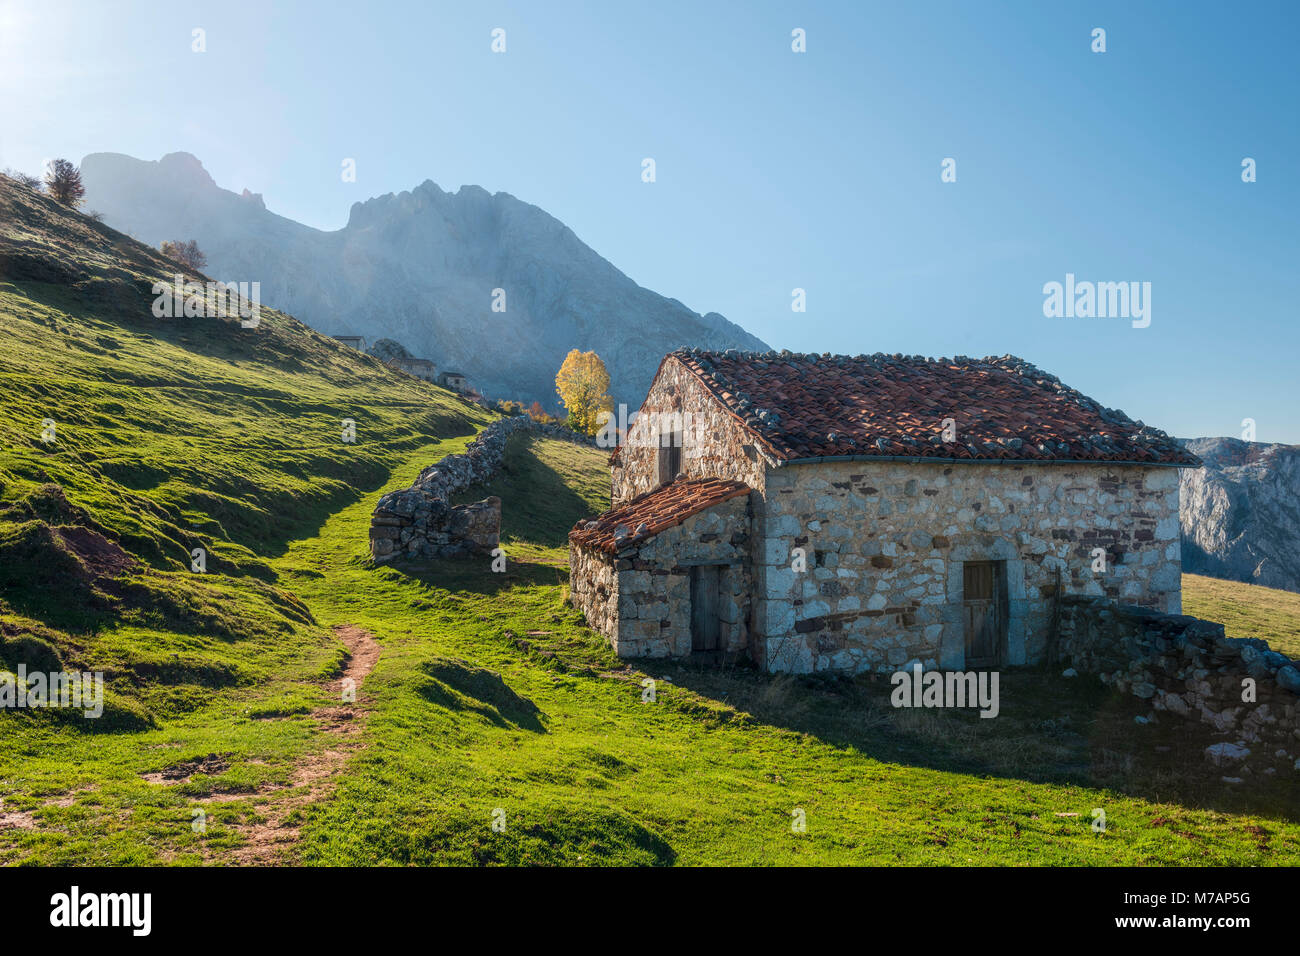 Alp in the Picos de Europa, Spain - Stock Image